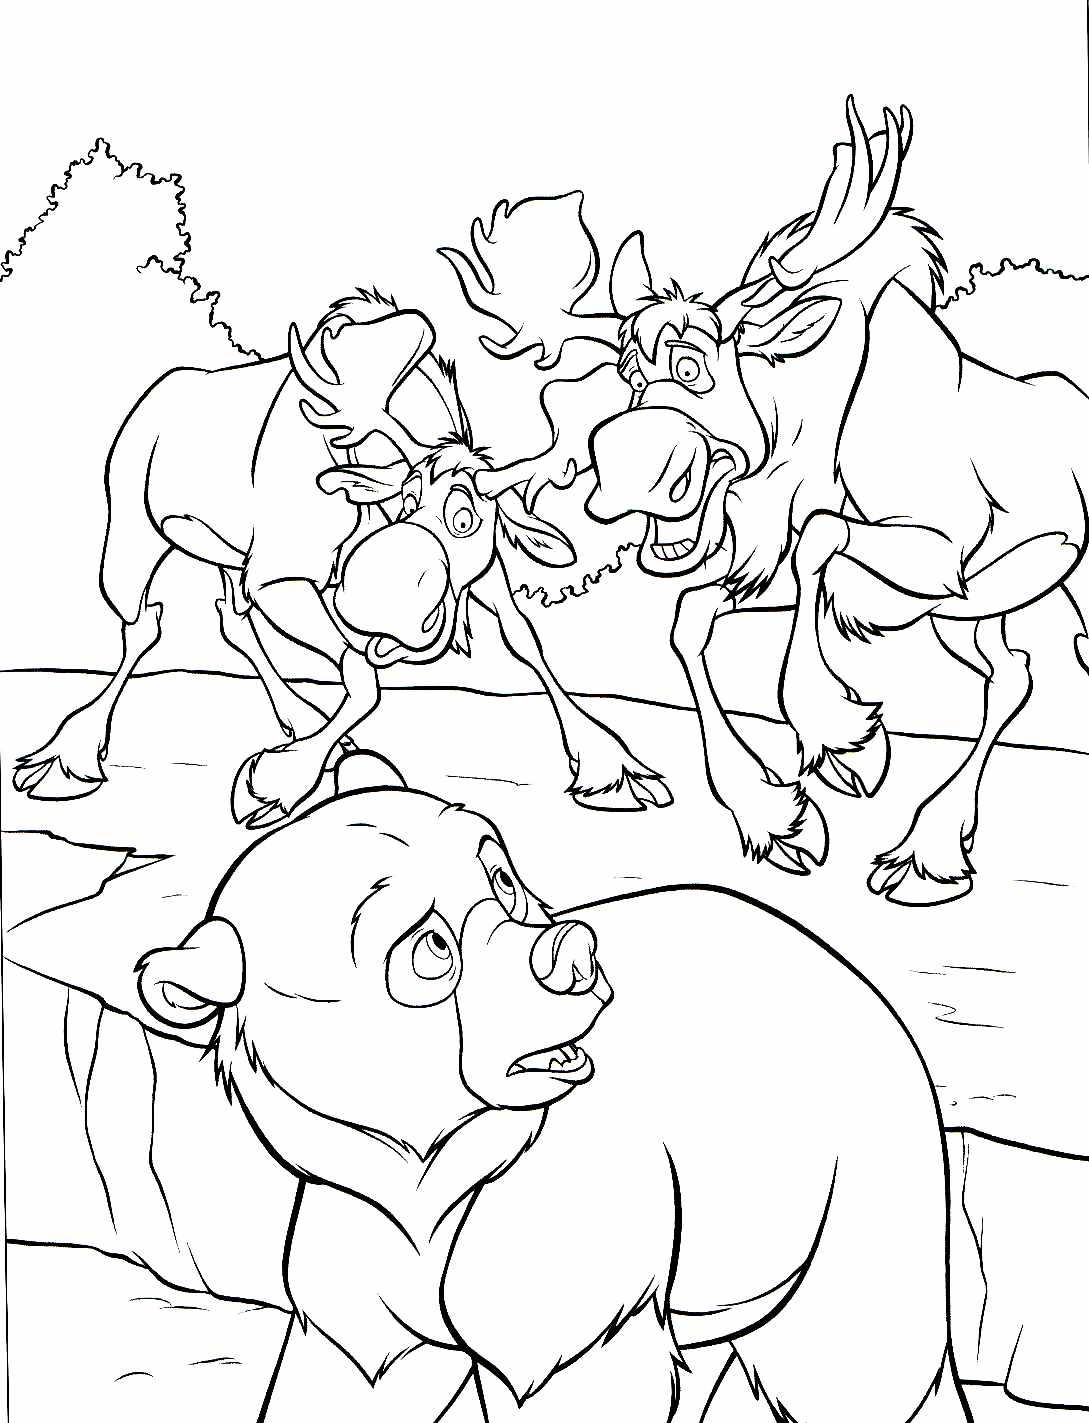 Brother Bear Free To Color For Children